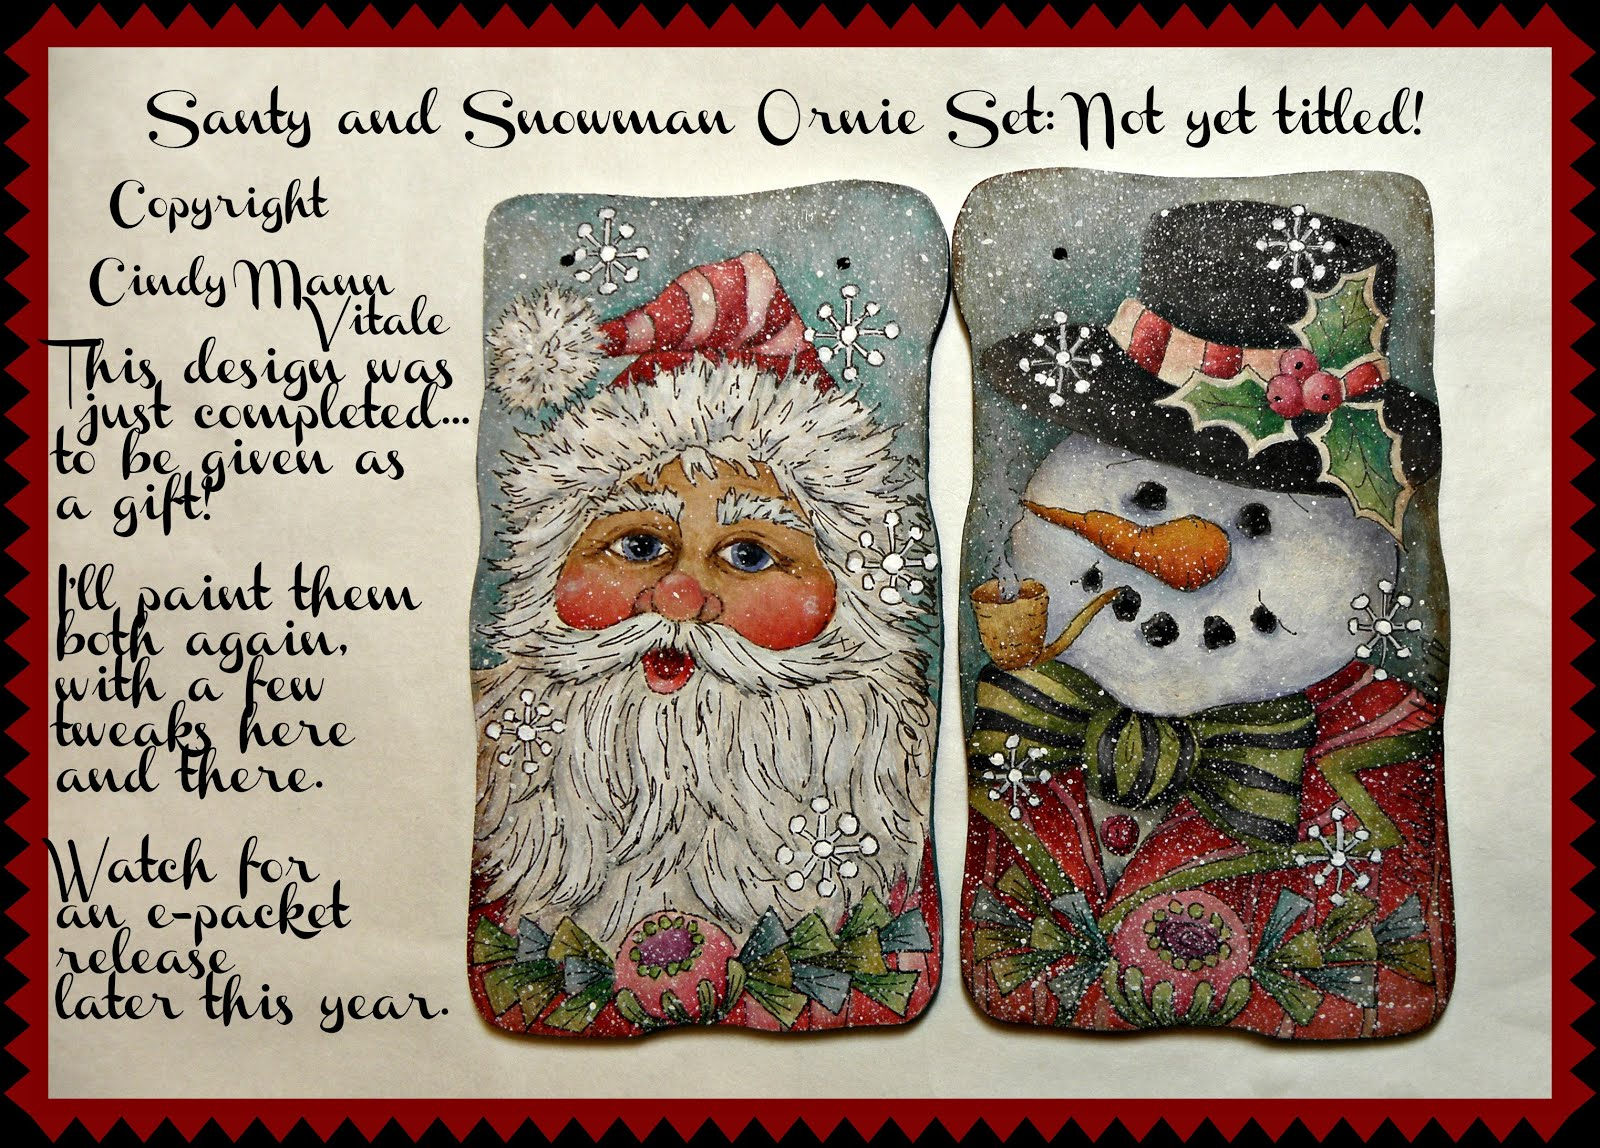 Santy and Snowman Ornies